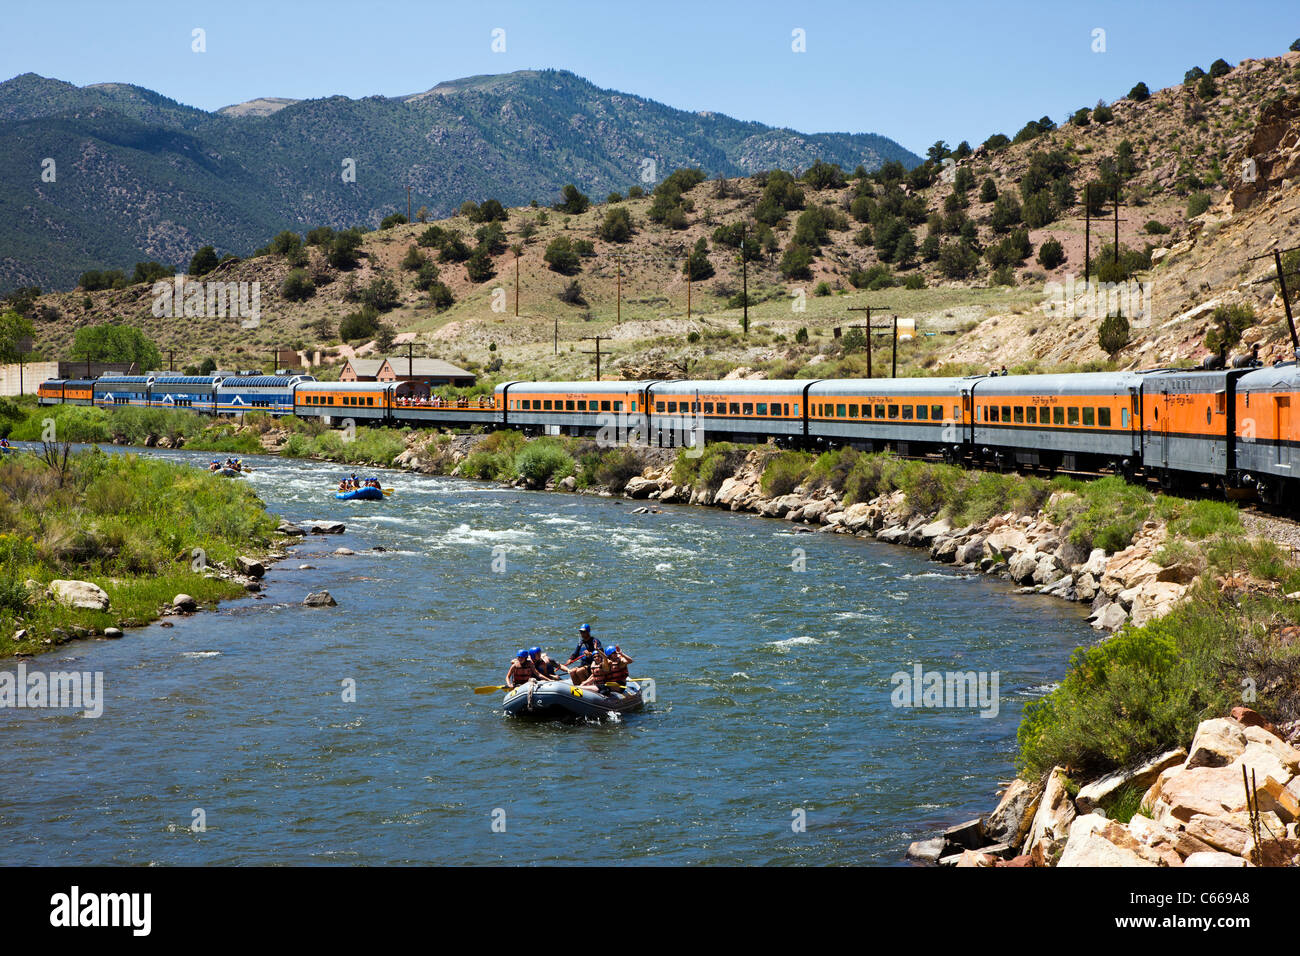 Popular tourist train runs through the 1,000' deep Royal Gorge Route along the Arkansas River, Central Colorado, - Stock Image